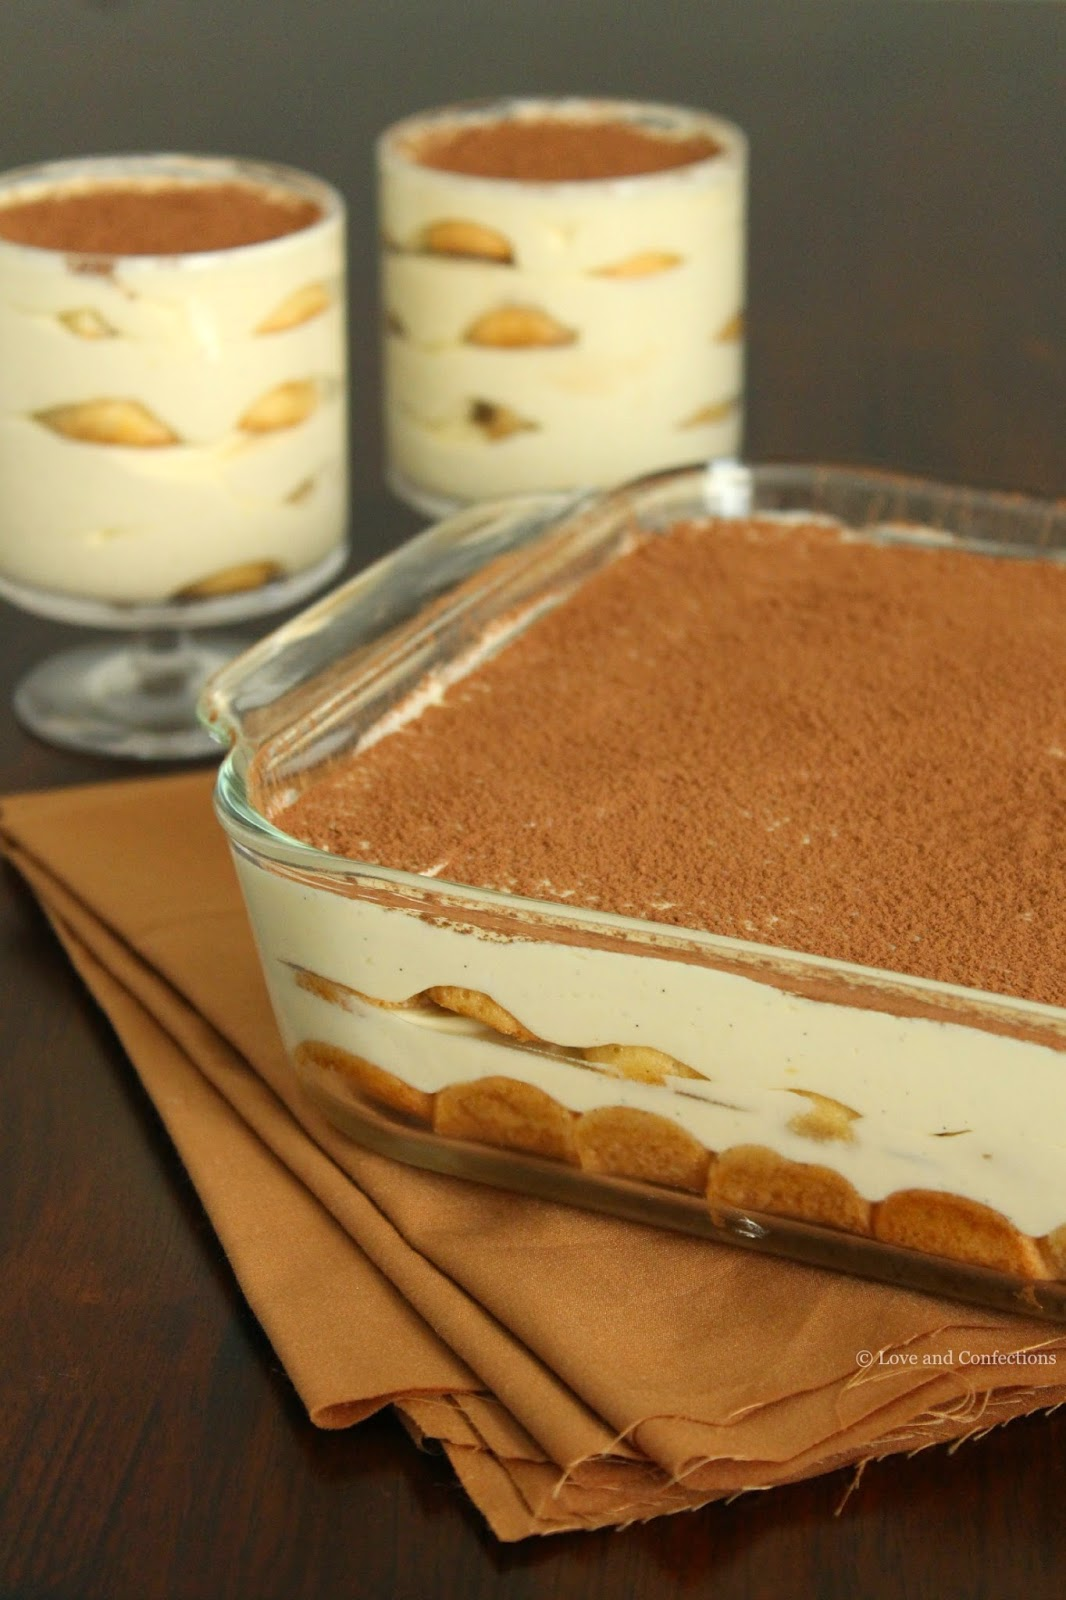 Vanilla Bean Tiramisu from LoveandConfections.com